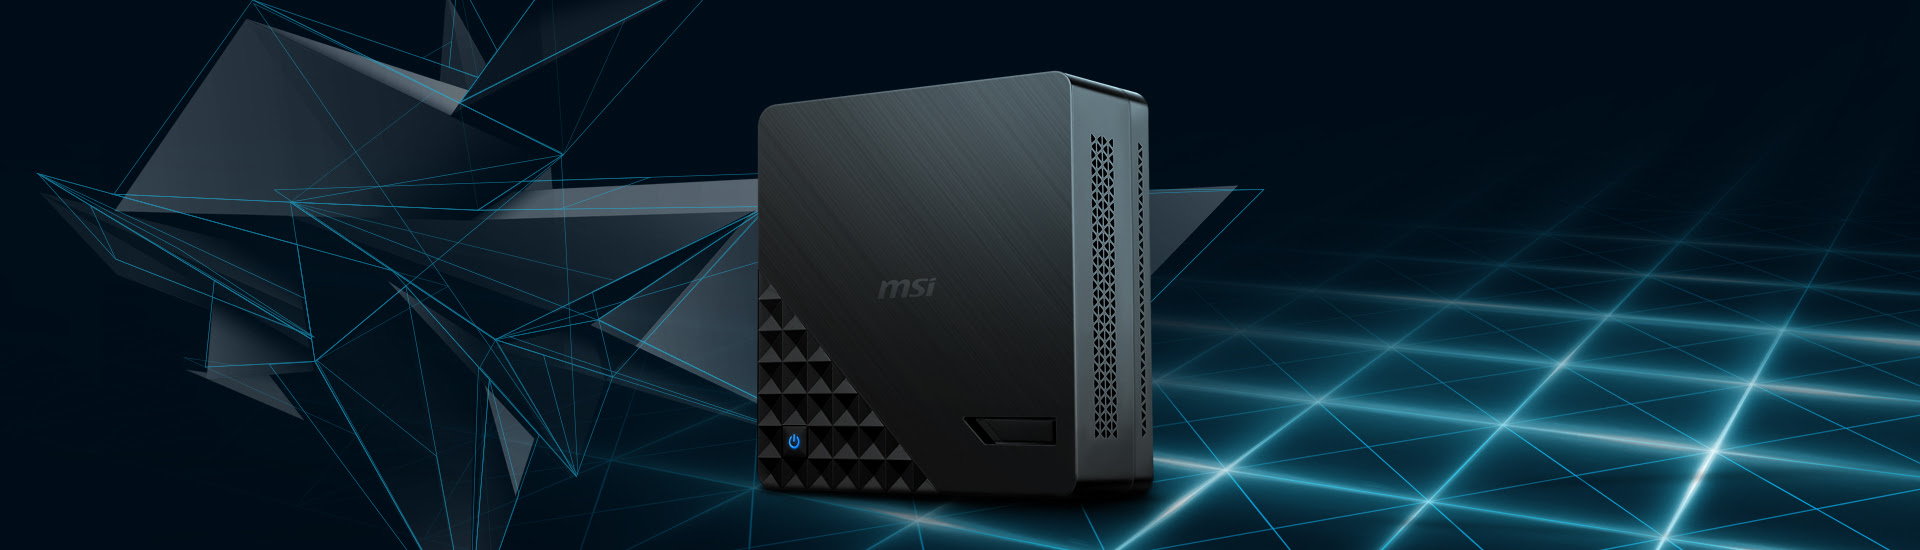 MSI Cubi 2 PLus